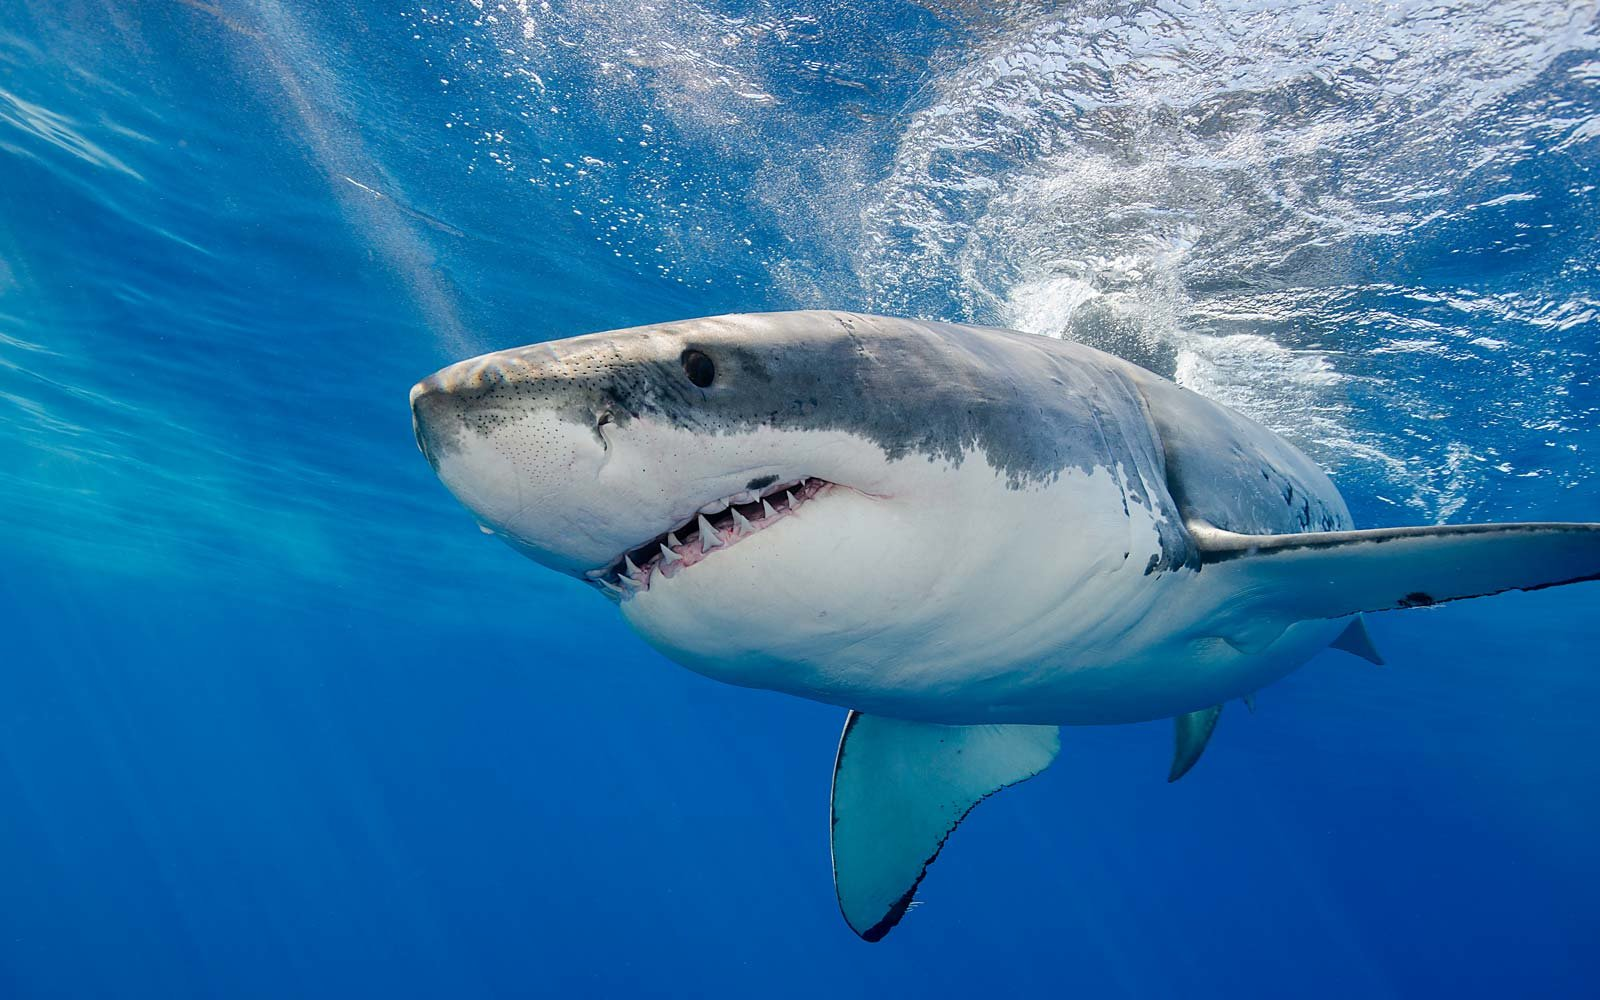 Great white shark swimming just under the surface.